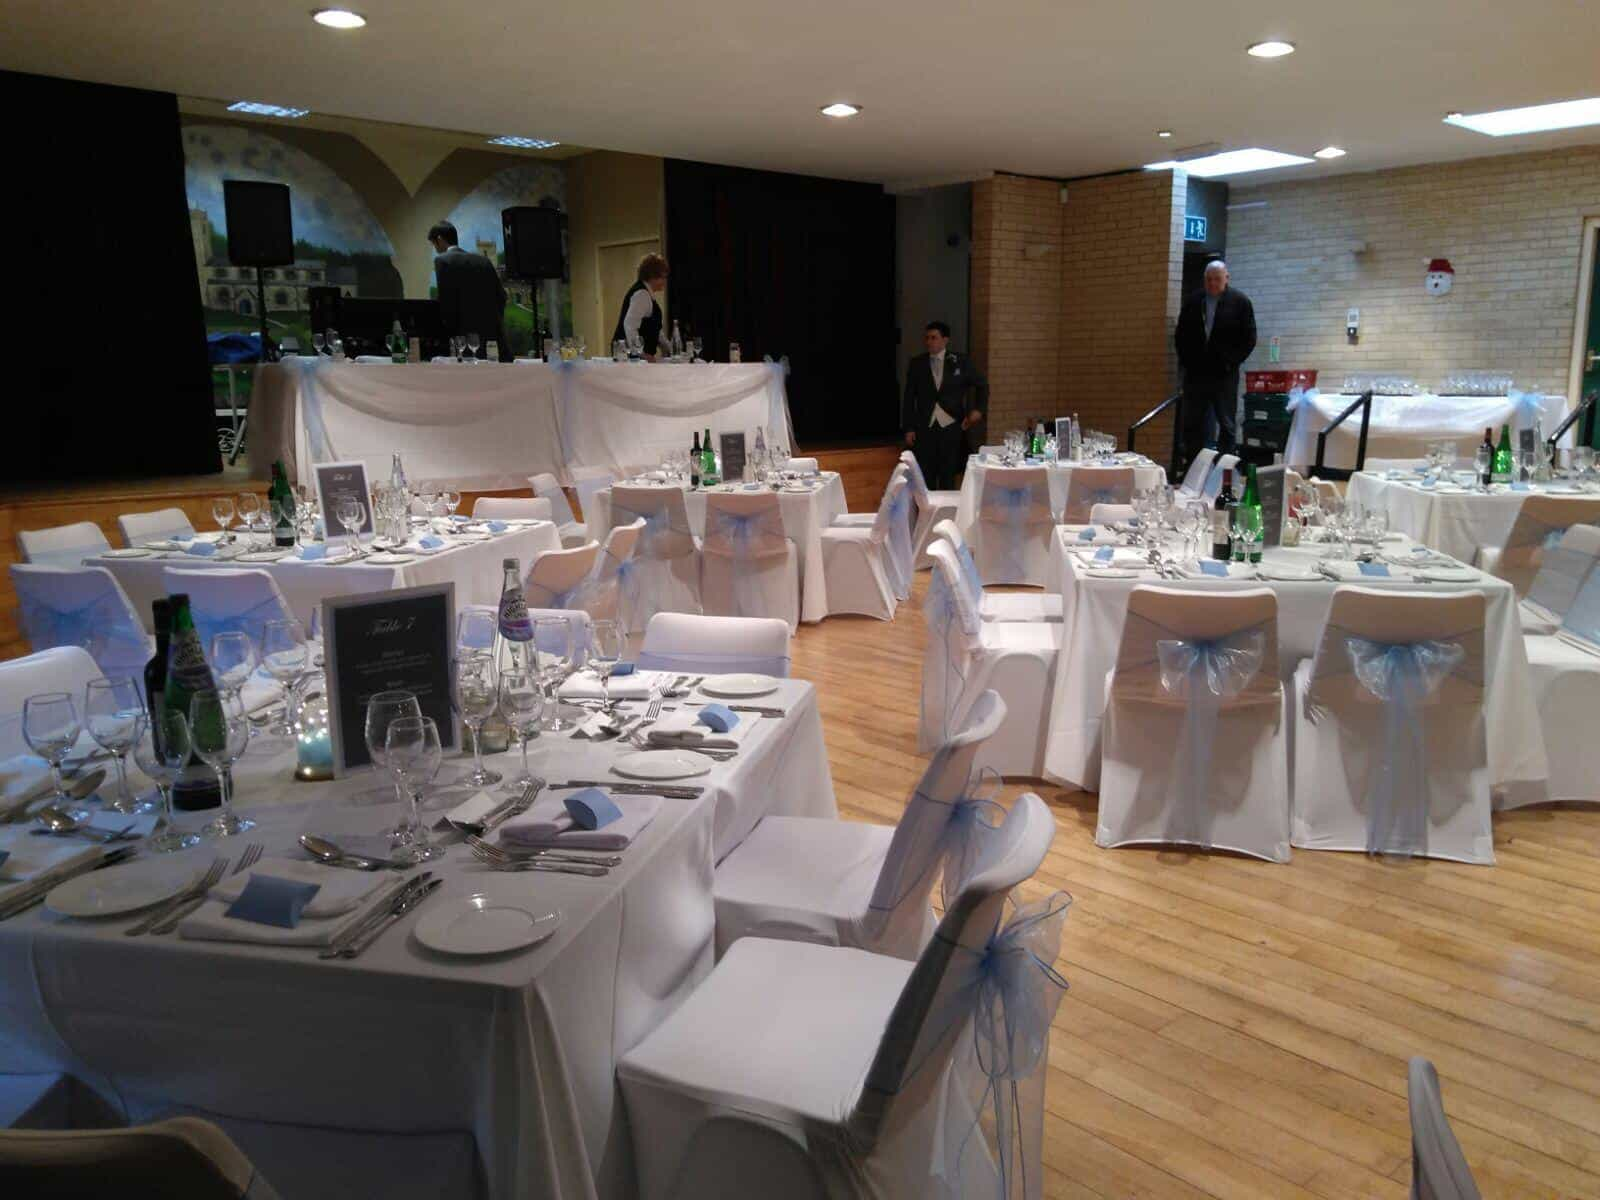 Wedding toptable with large 'love' letters where the bride and groom sit